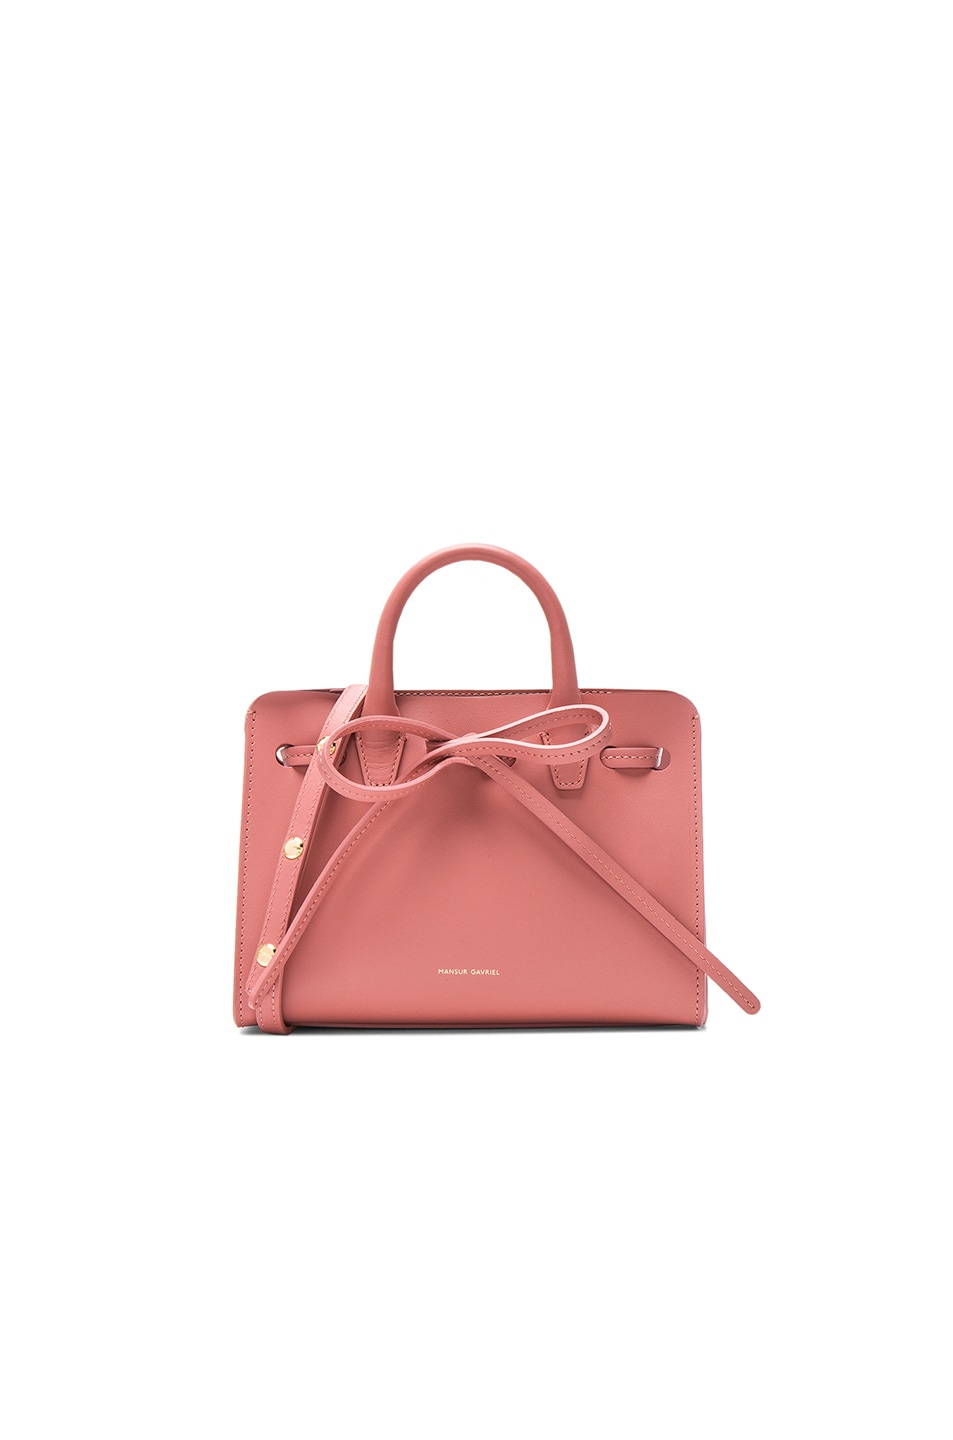 346e2a998da4b Image 1 of Mansur Gavriel Mini Mini Sun Bag in Blush Calf